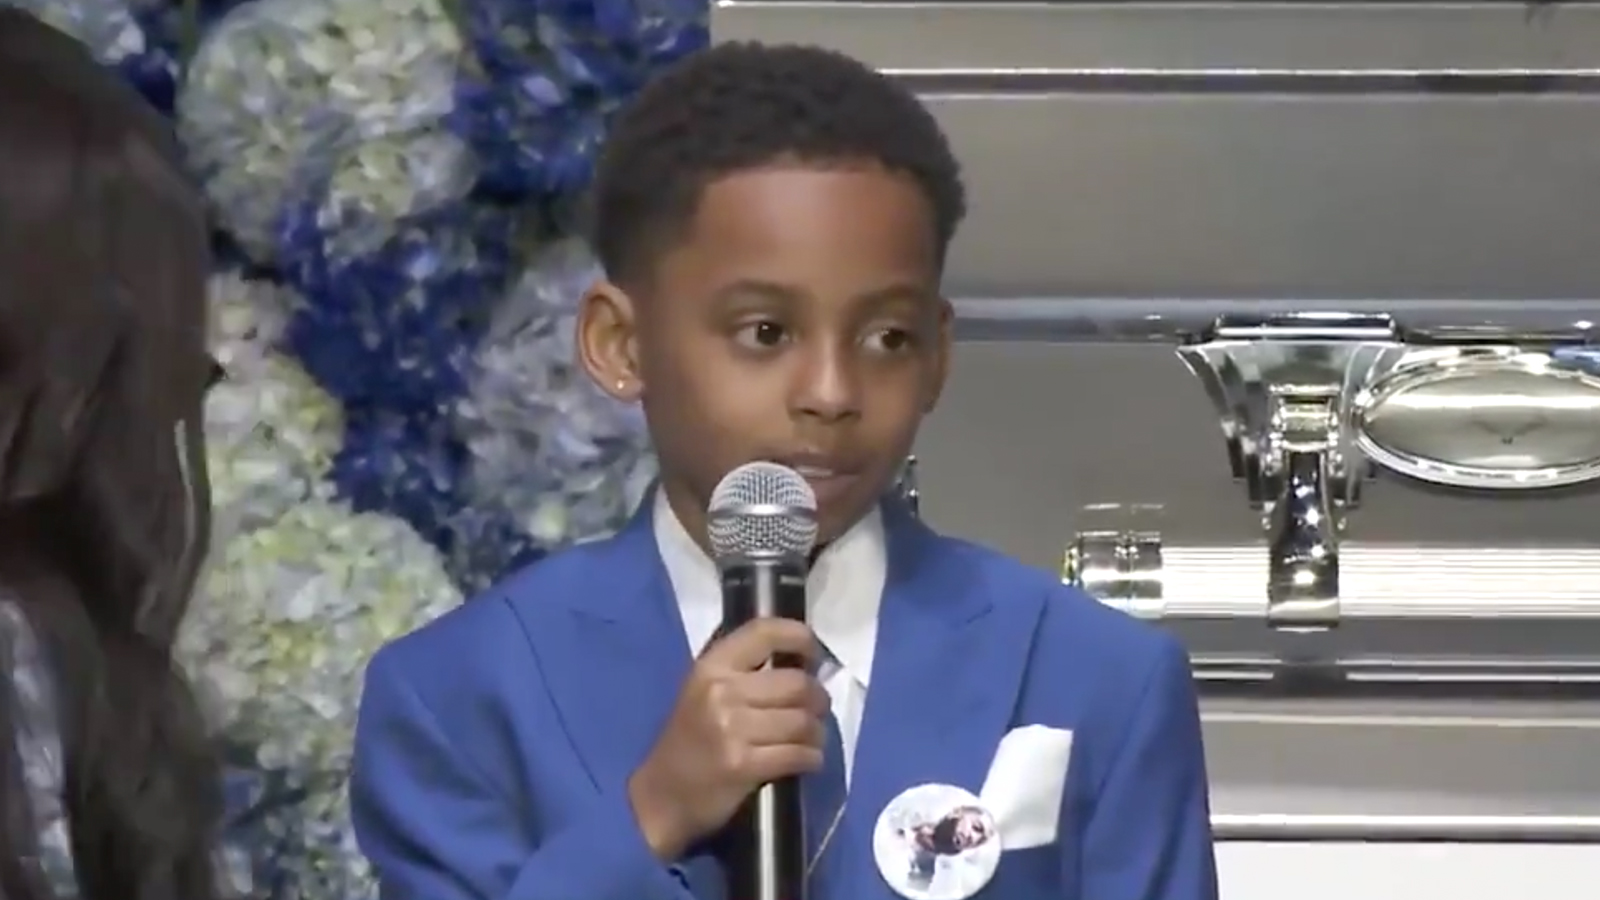 reginae-carter-is-proud-of-her-brother-kameron-carter-who-spoke-at-nipsey-hussles-memorial-service-tiny-harris-feels-the-same-way-see-the-video